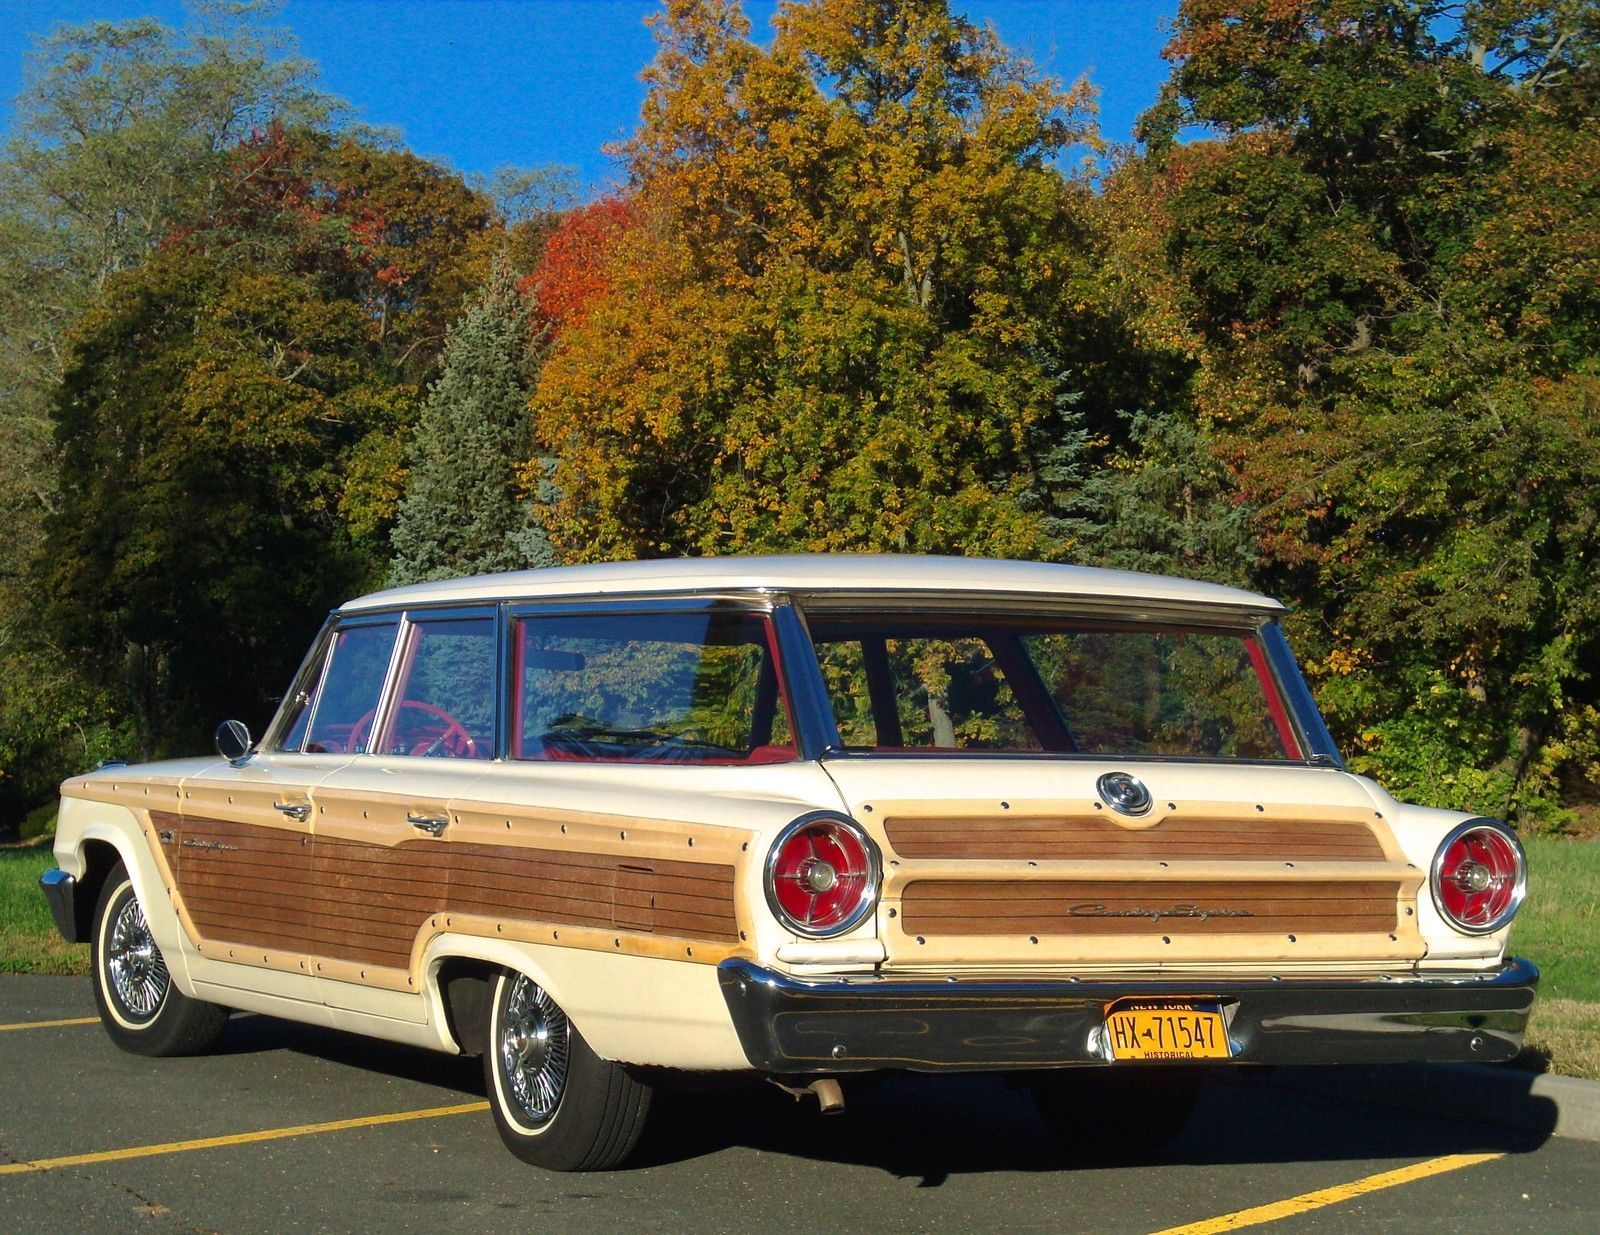 63 ford country squire station wagon like on the movie the help love